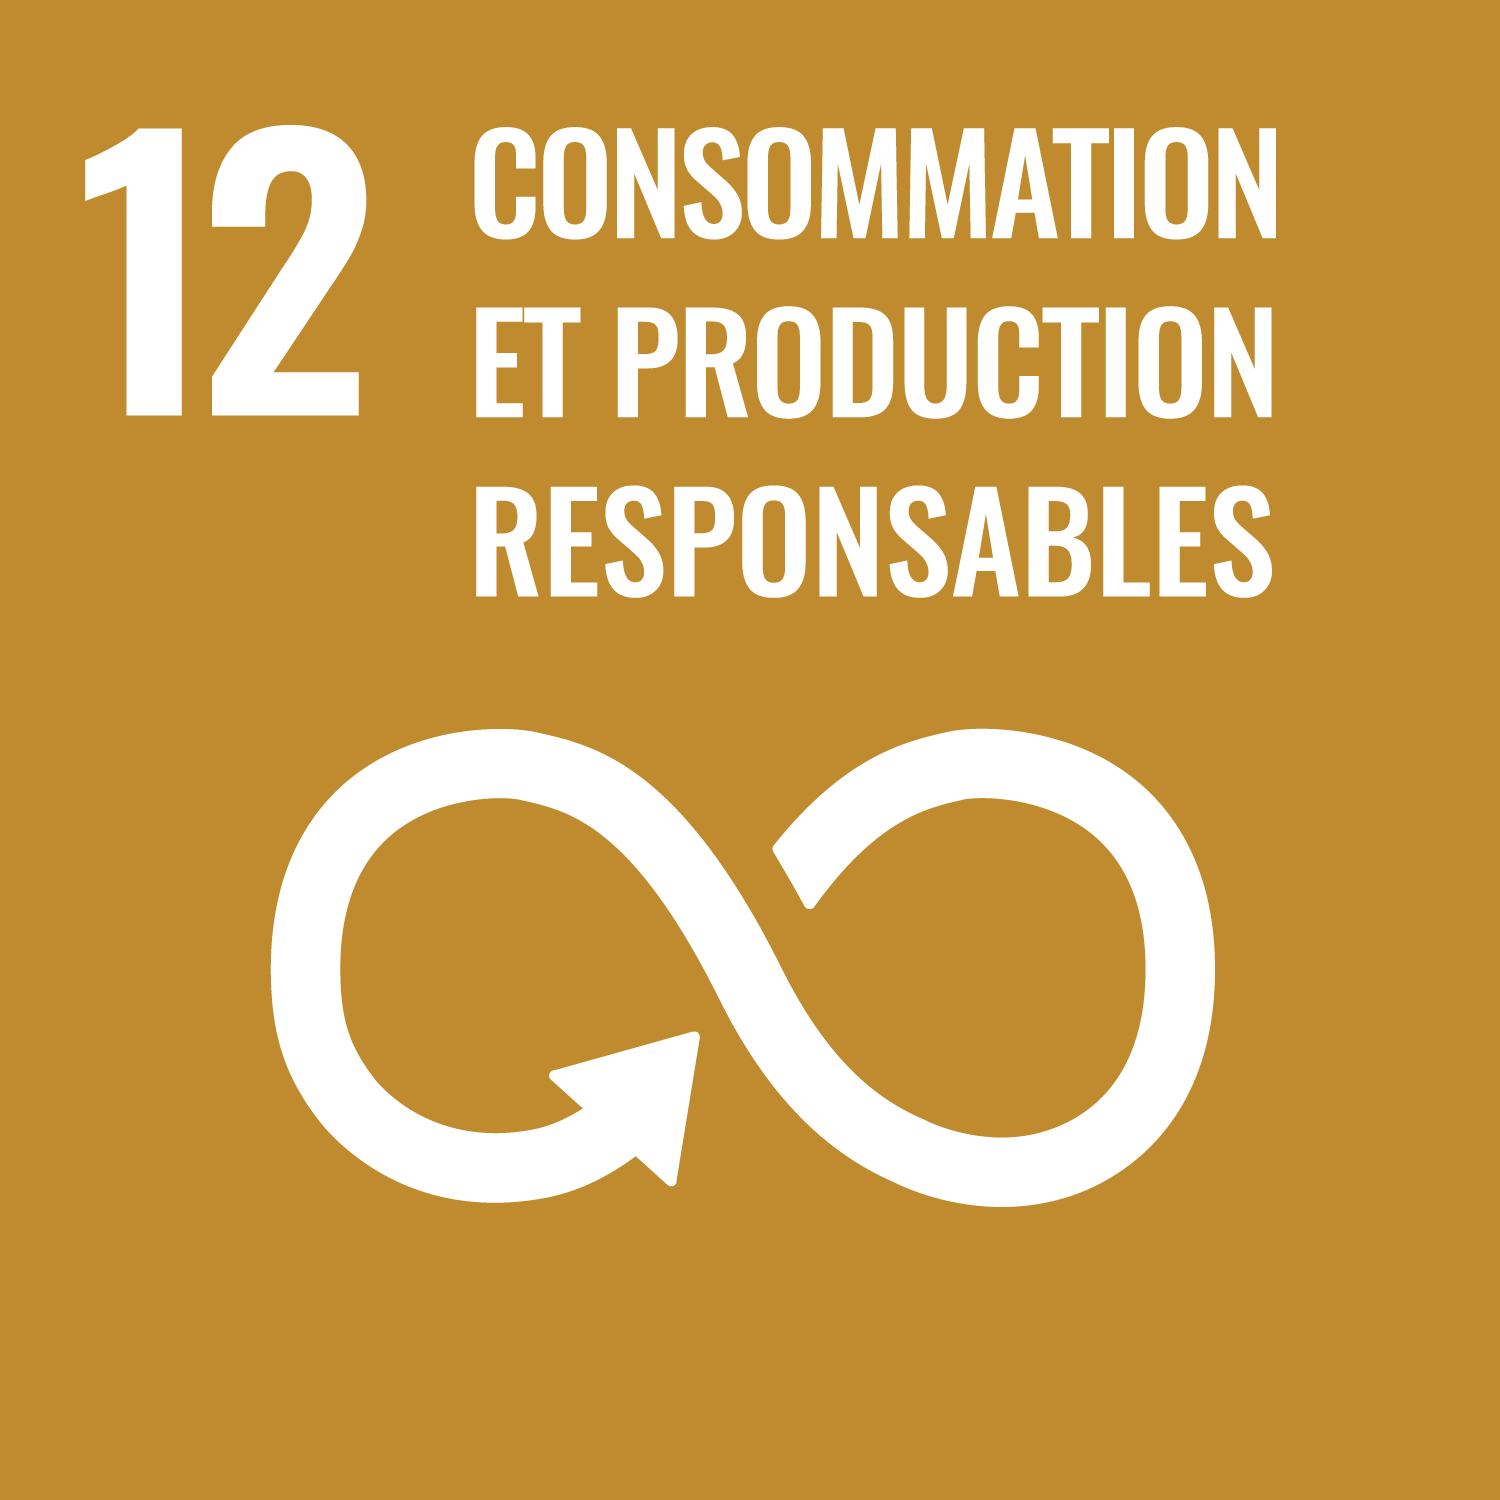 RSE 12 Consommation production responsables